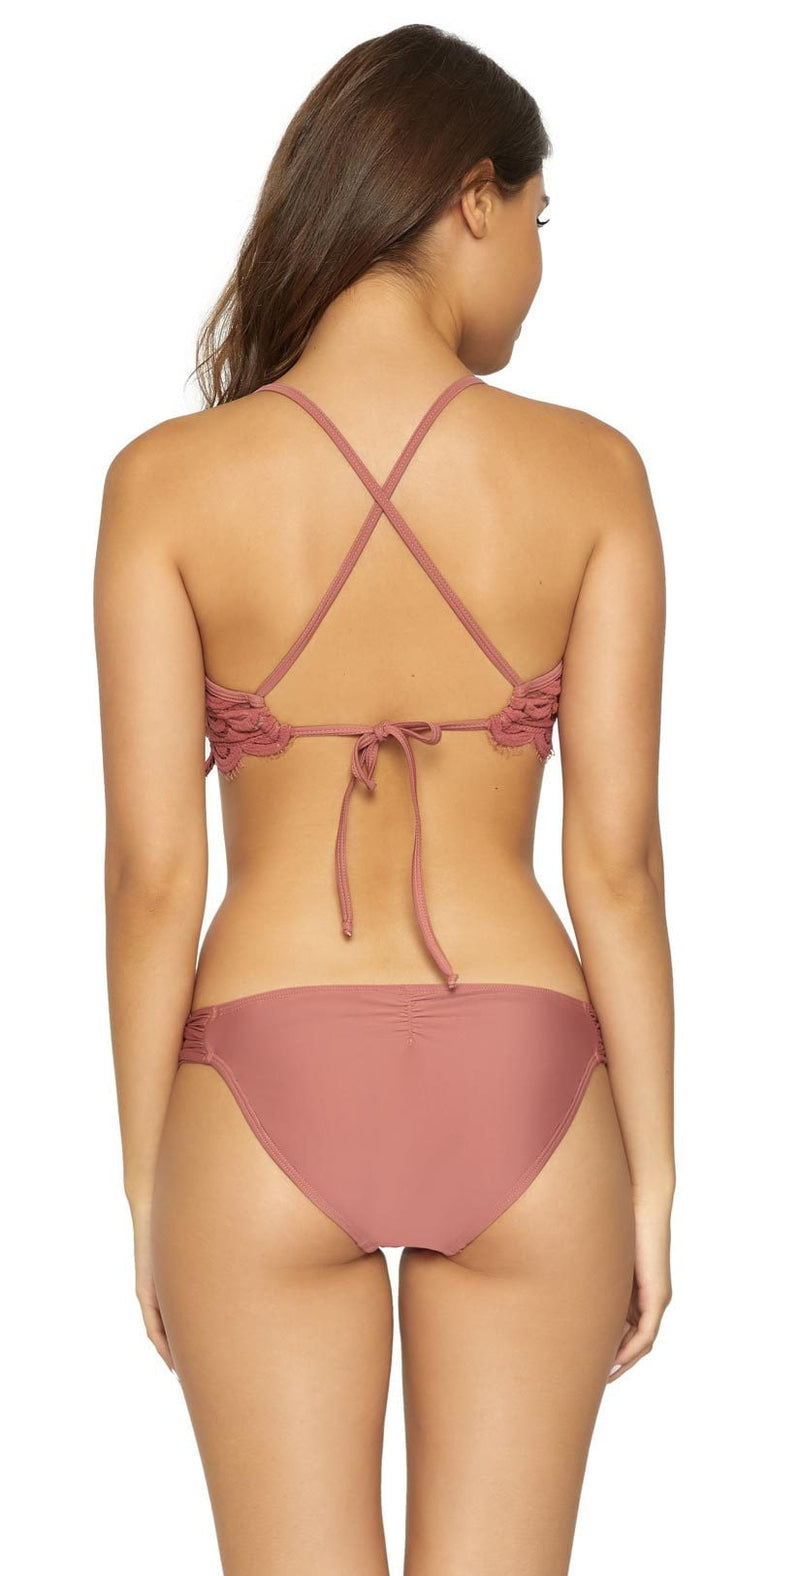 PilyQ Dusty Rose Lace Fanned Bottom DUS-251F: